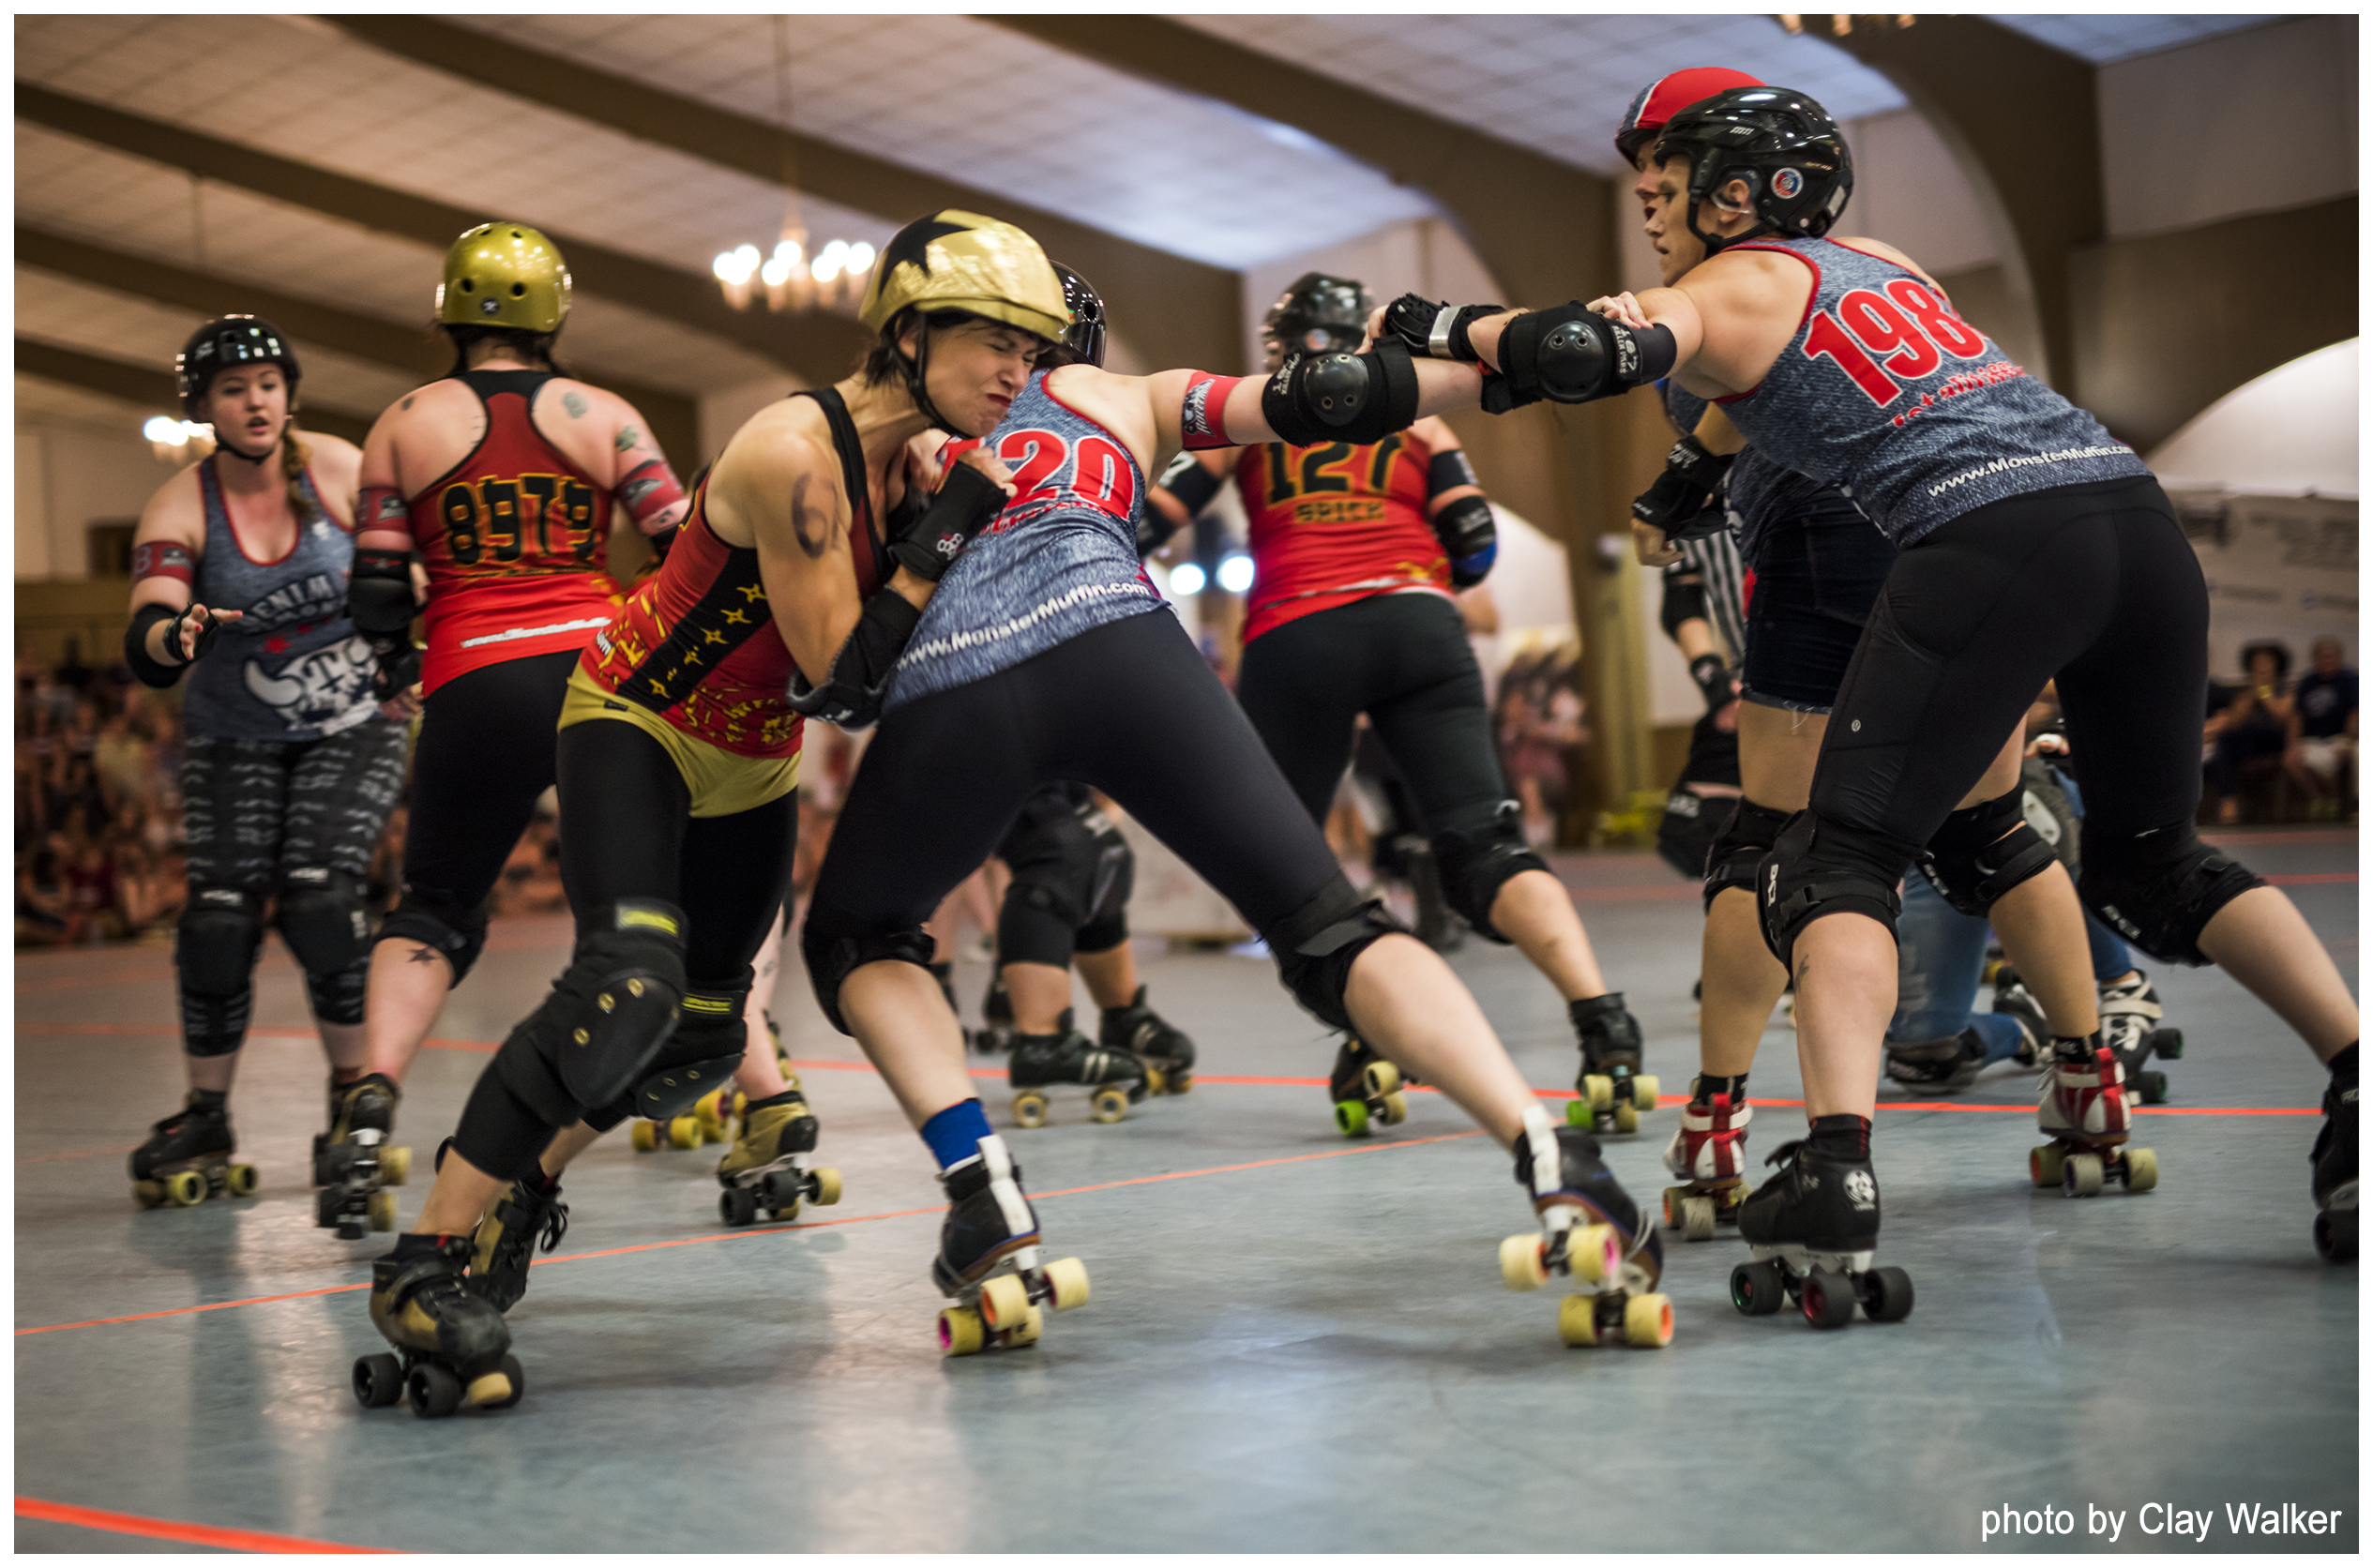 atlanta rollergirls author walker clay